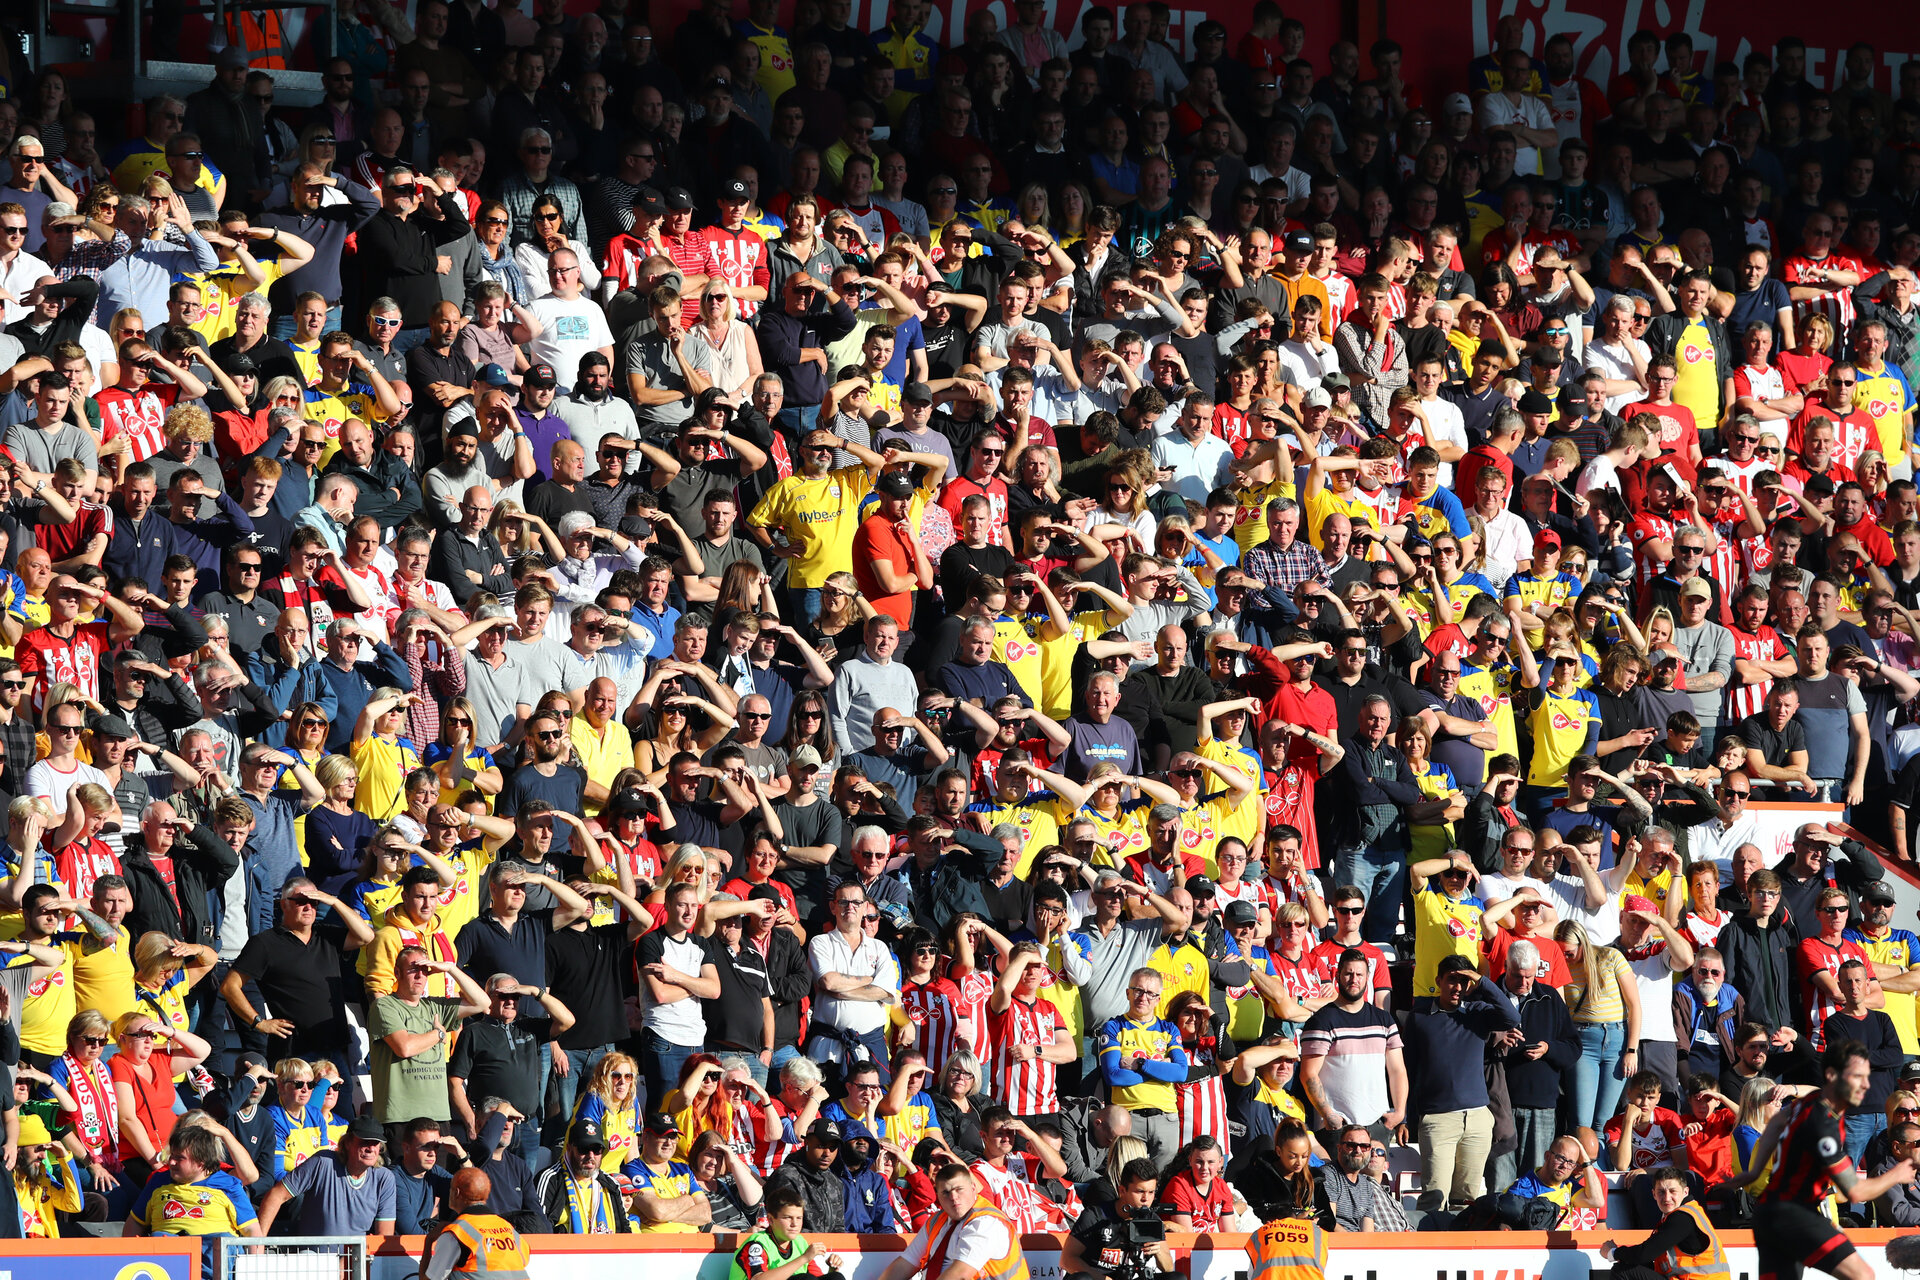 BOURNEMOUTH, ENGLAND - OCTOBER 20: fans of Southampton during the Premier League match between AFC Bournemouth and Southampton FC at Vitality Stadium on October 20, 2018 in Bournemouth, United Kingdom. (Photo by Matt Watson/Southampton FC via Getty Images)